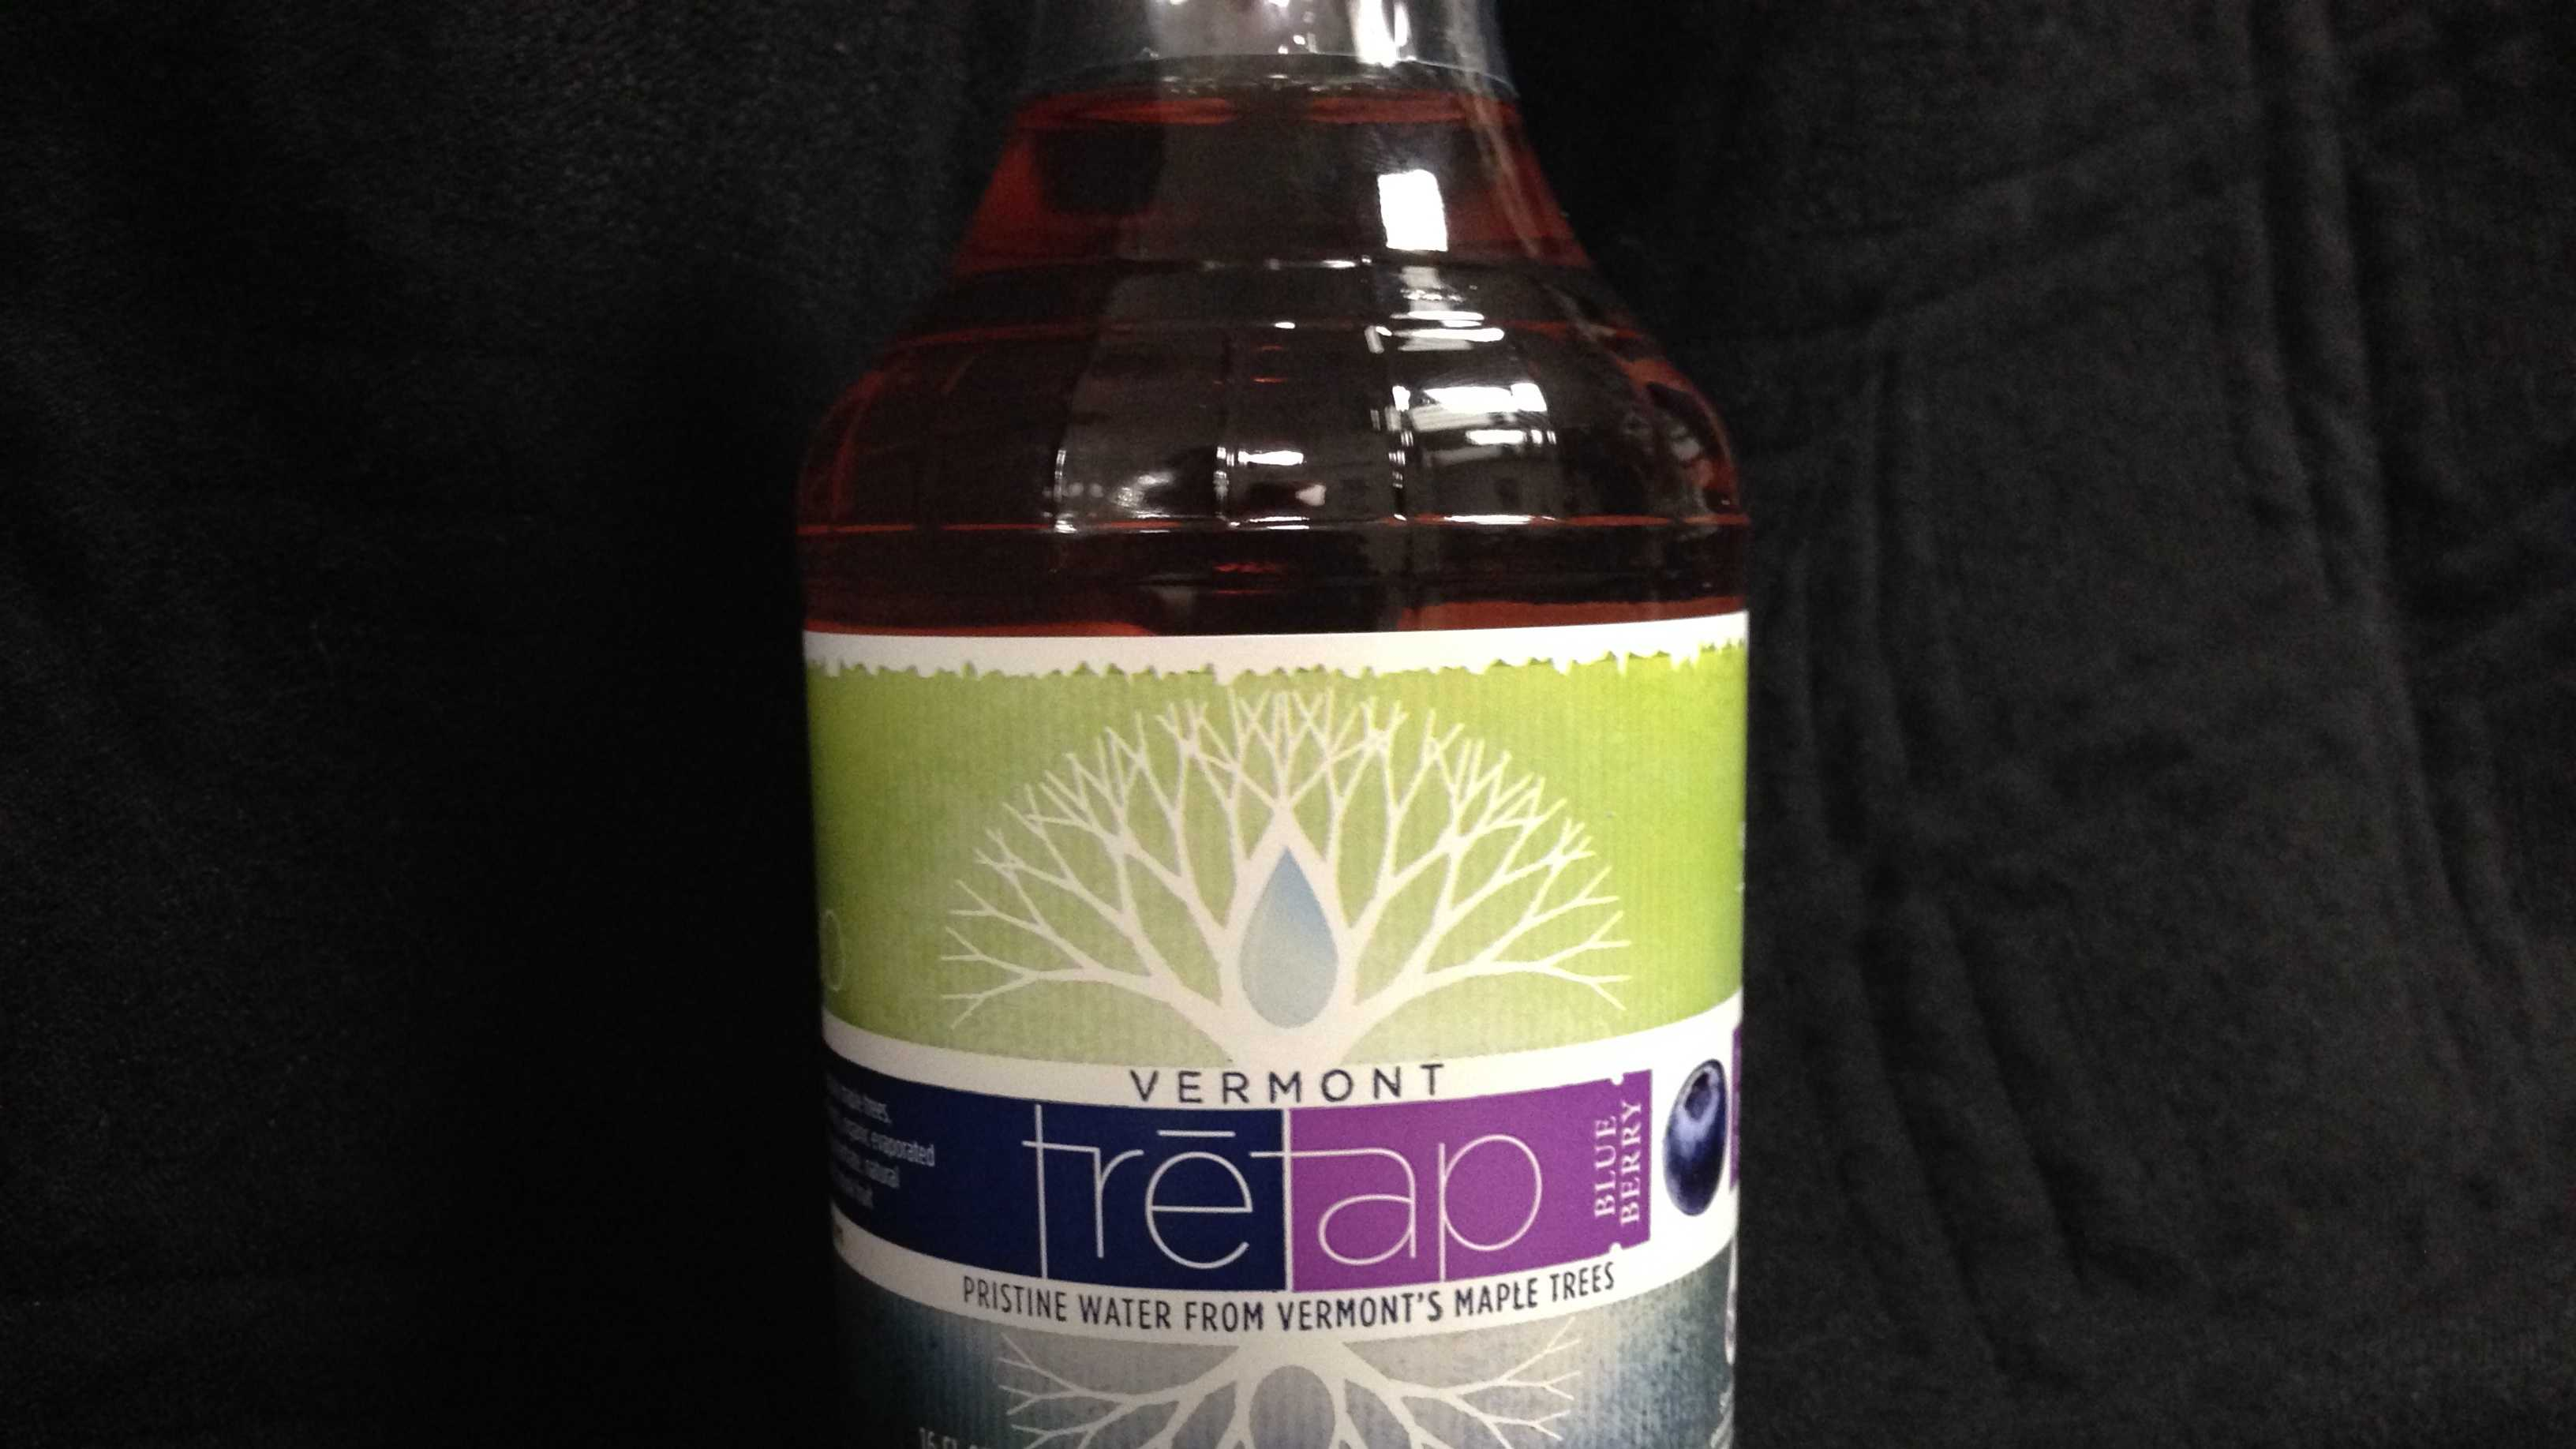 Bottled tree water a new Vt. business - img